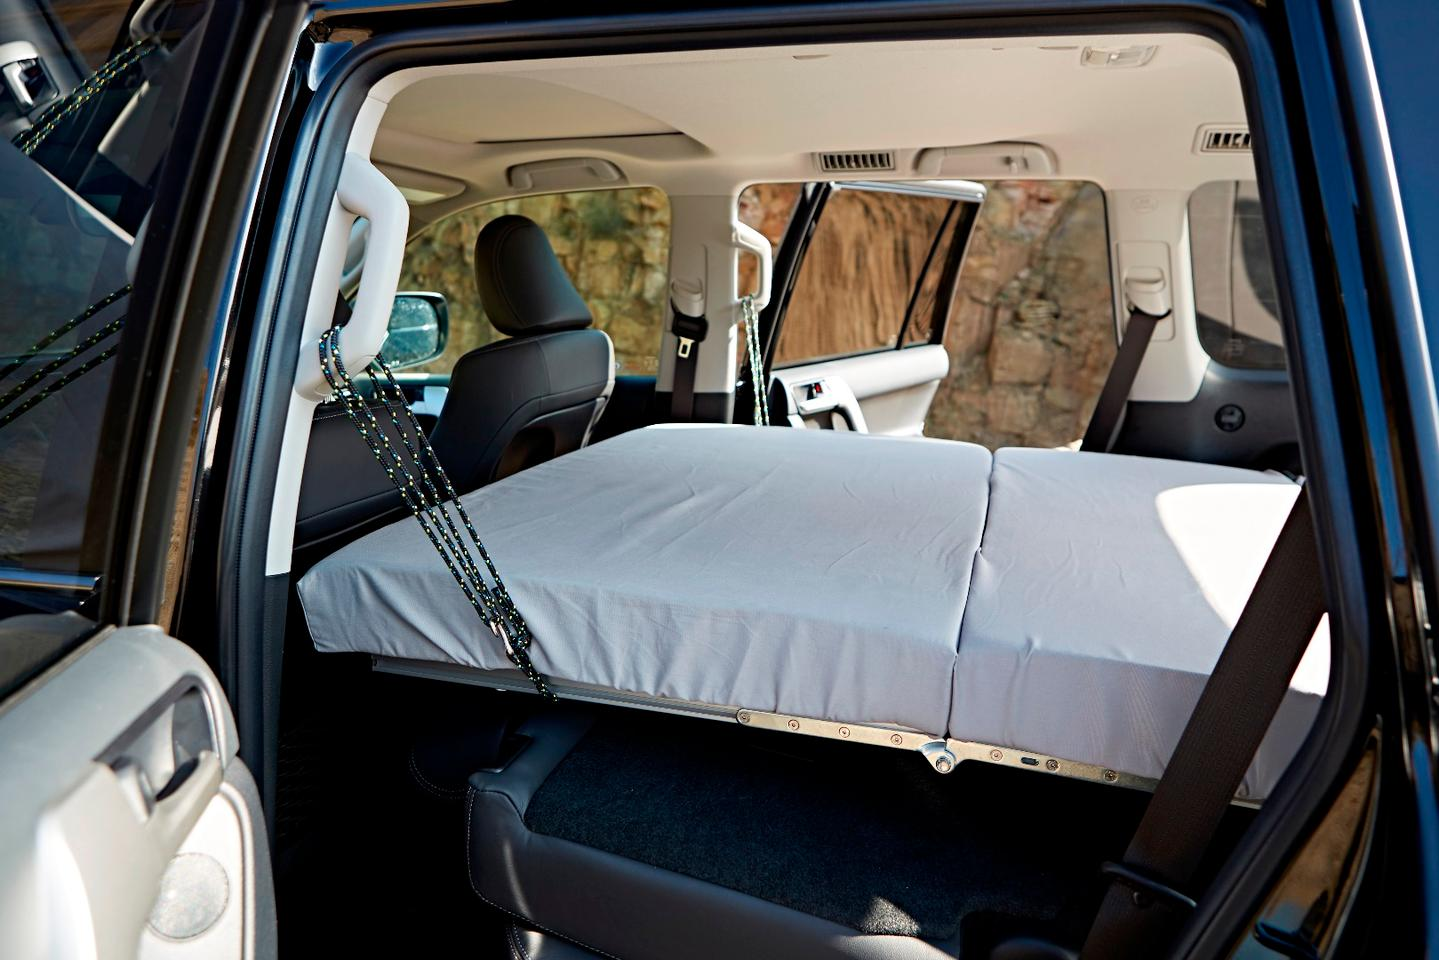 The fold-out bed is supported by straps around the grab handles